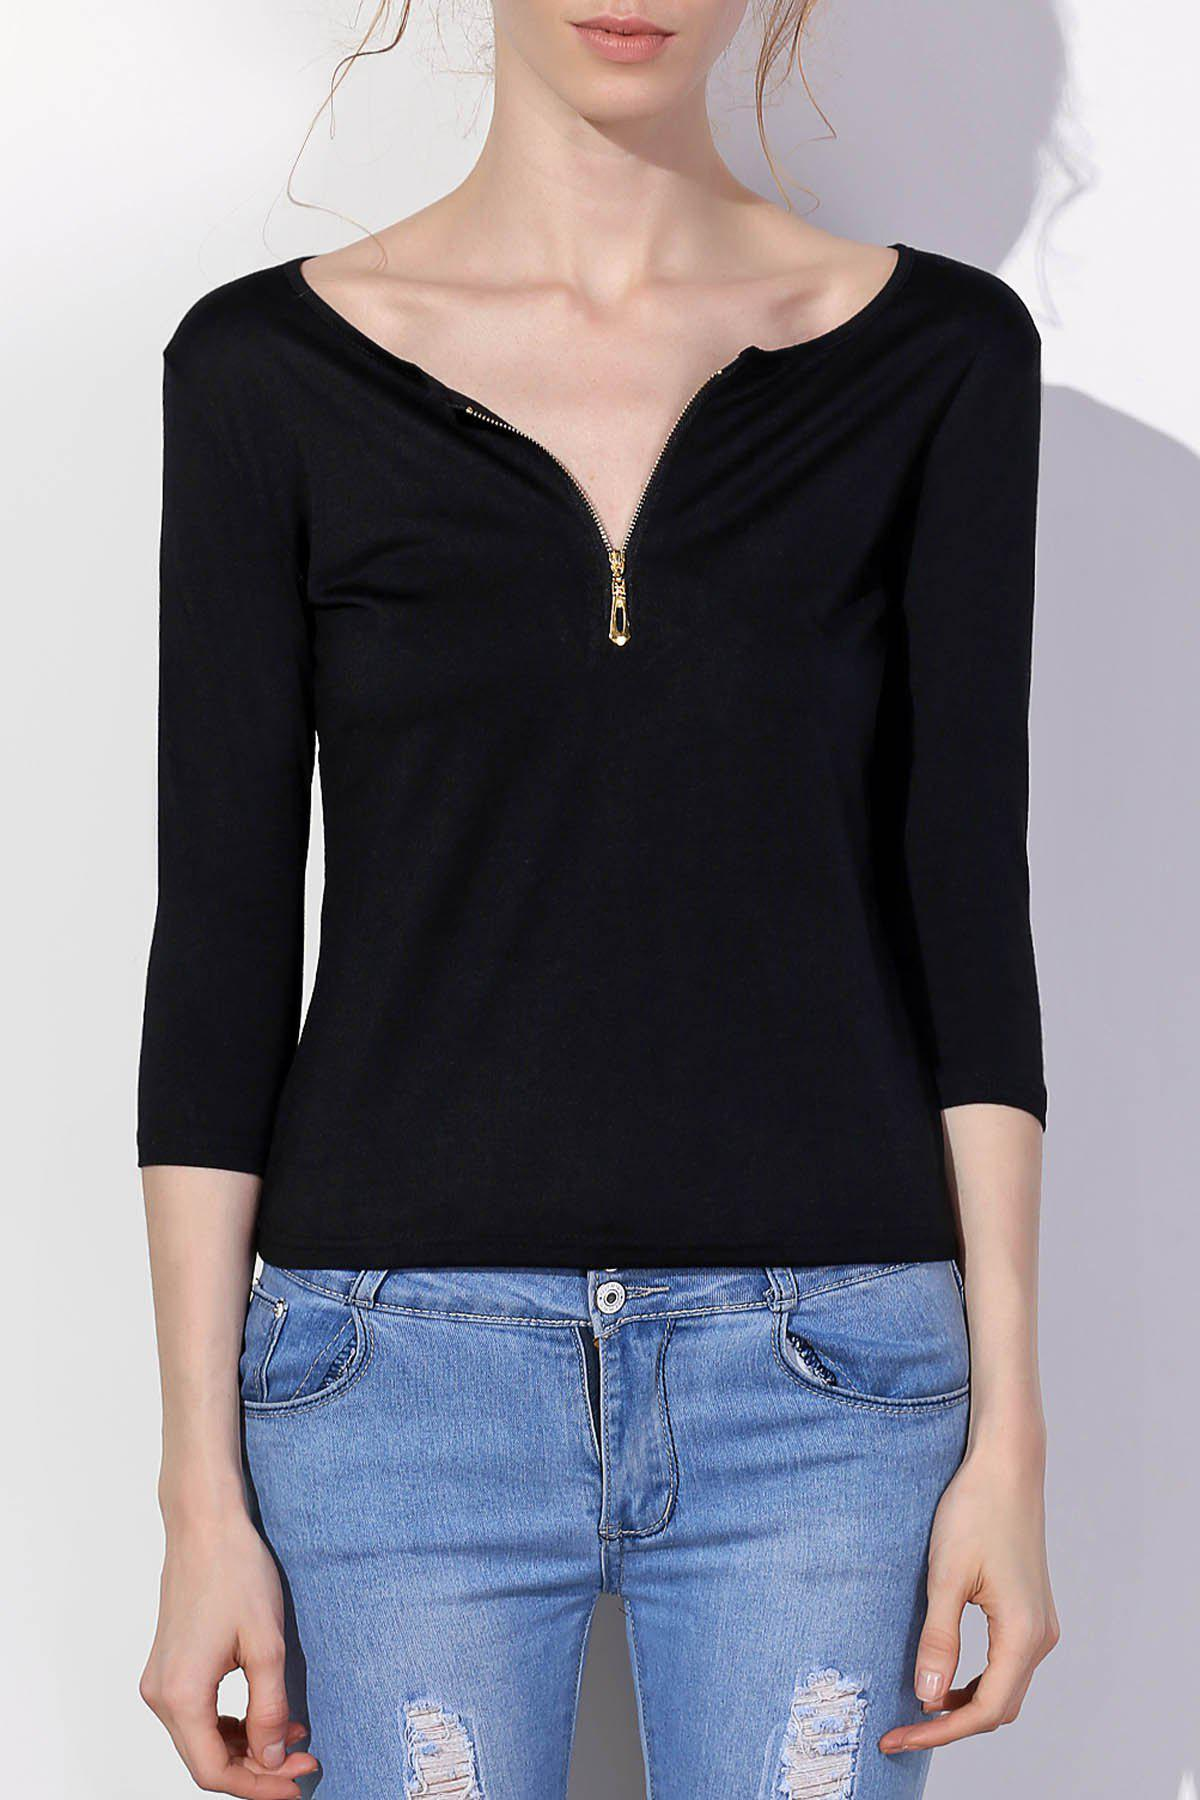 Chic Sexy Low-Cut Solid Color Zippered 3/4 Sleeve T-Shirt For Women